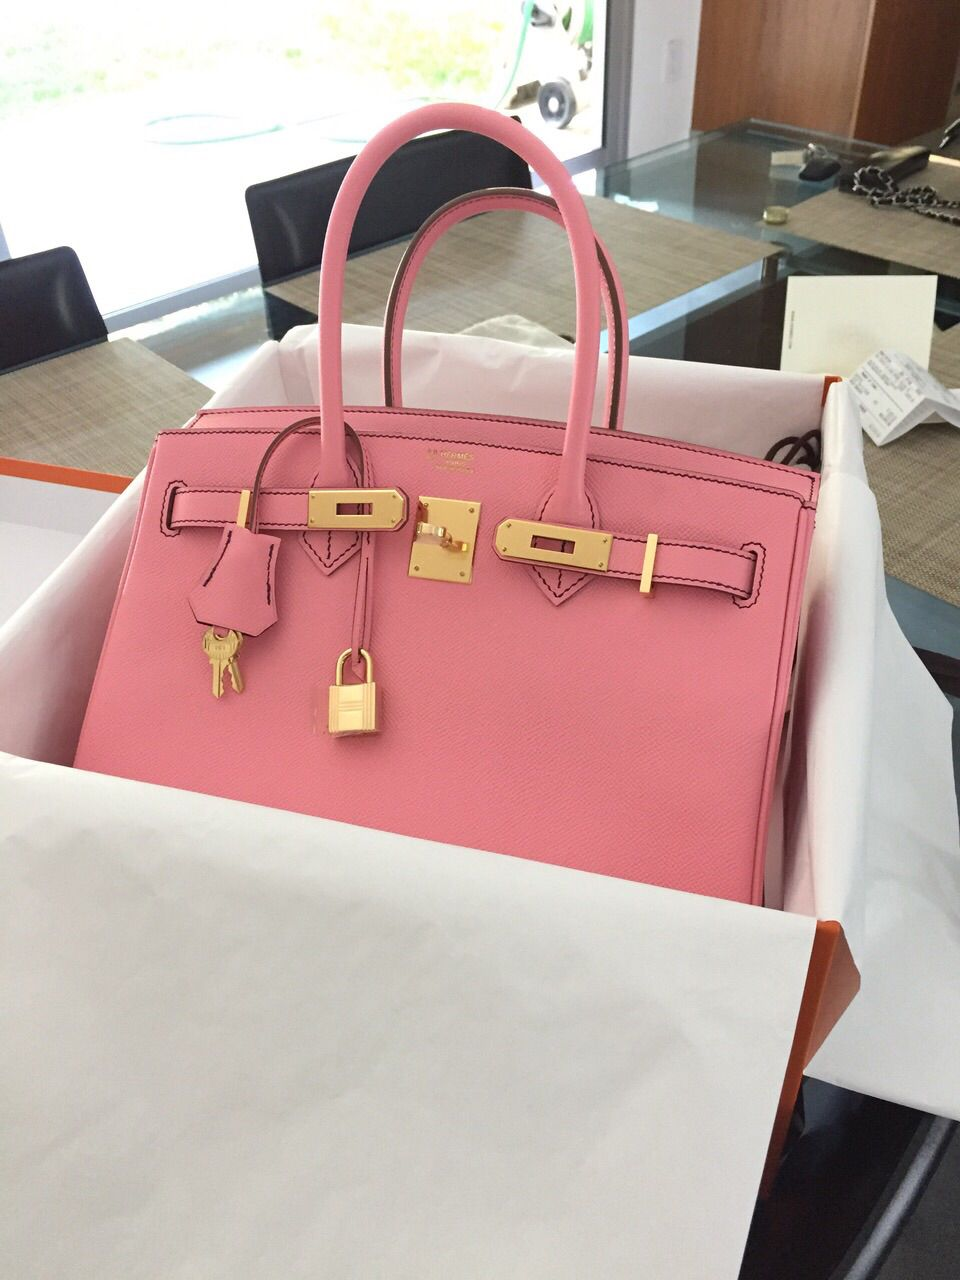 Yummy Special Order Hermes Birkin 30 Rose Confetti Pink Bag   The It ... bac4330150